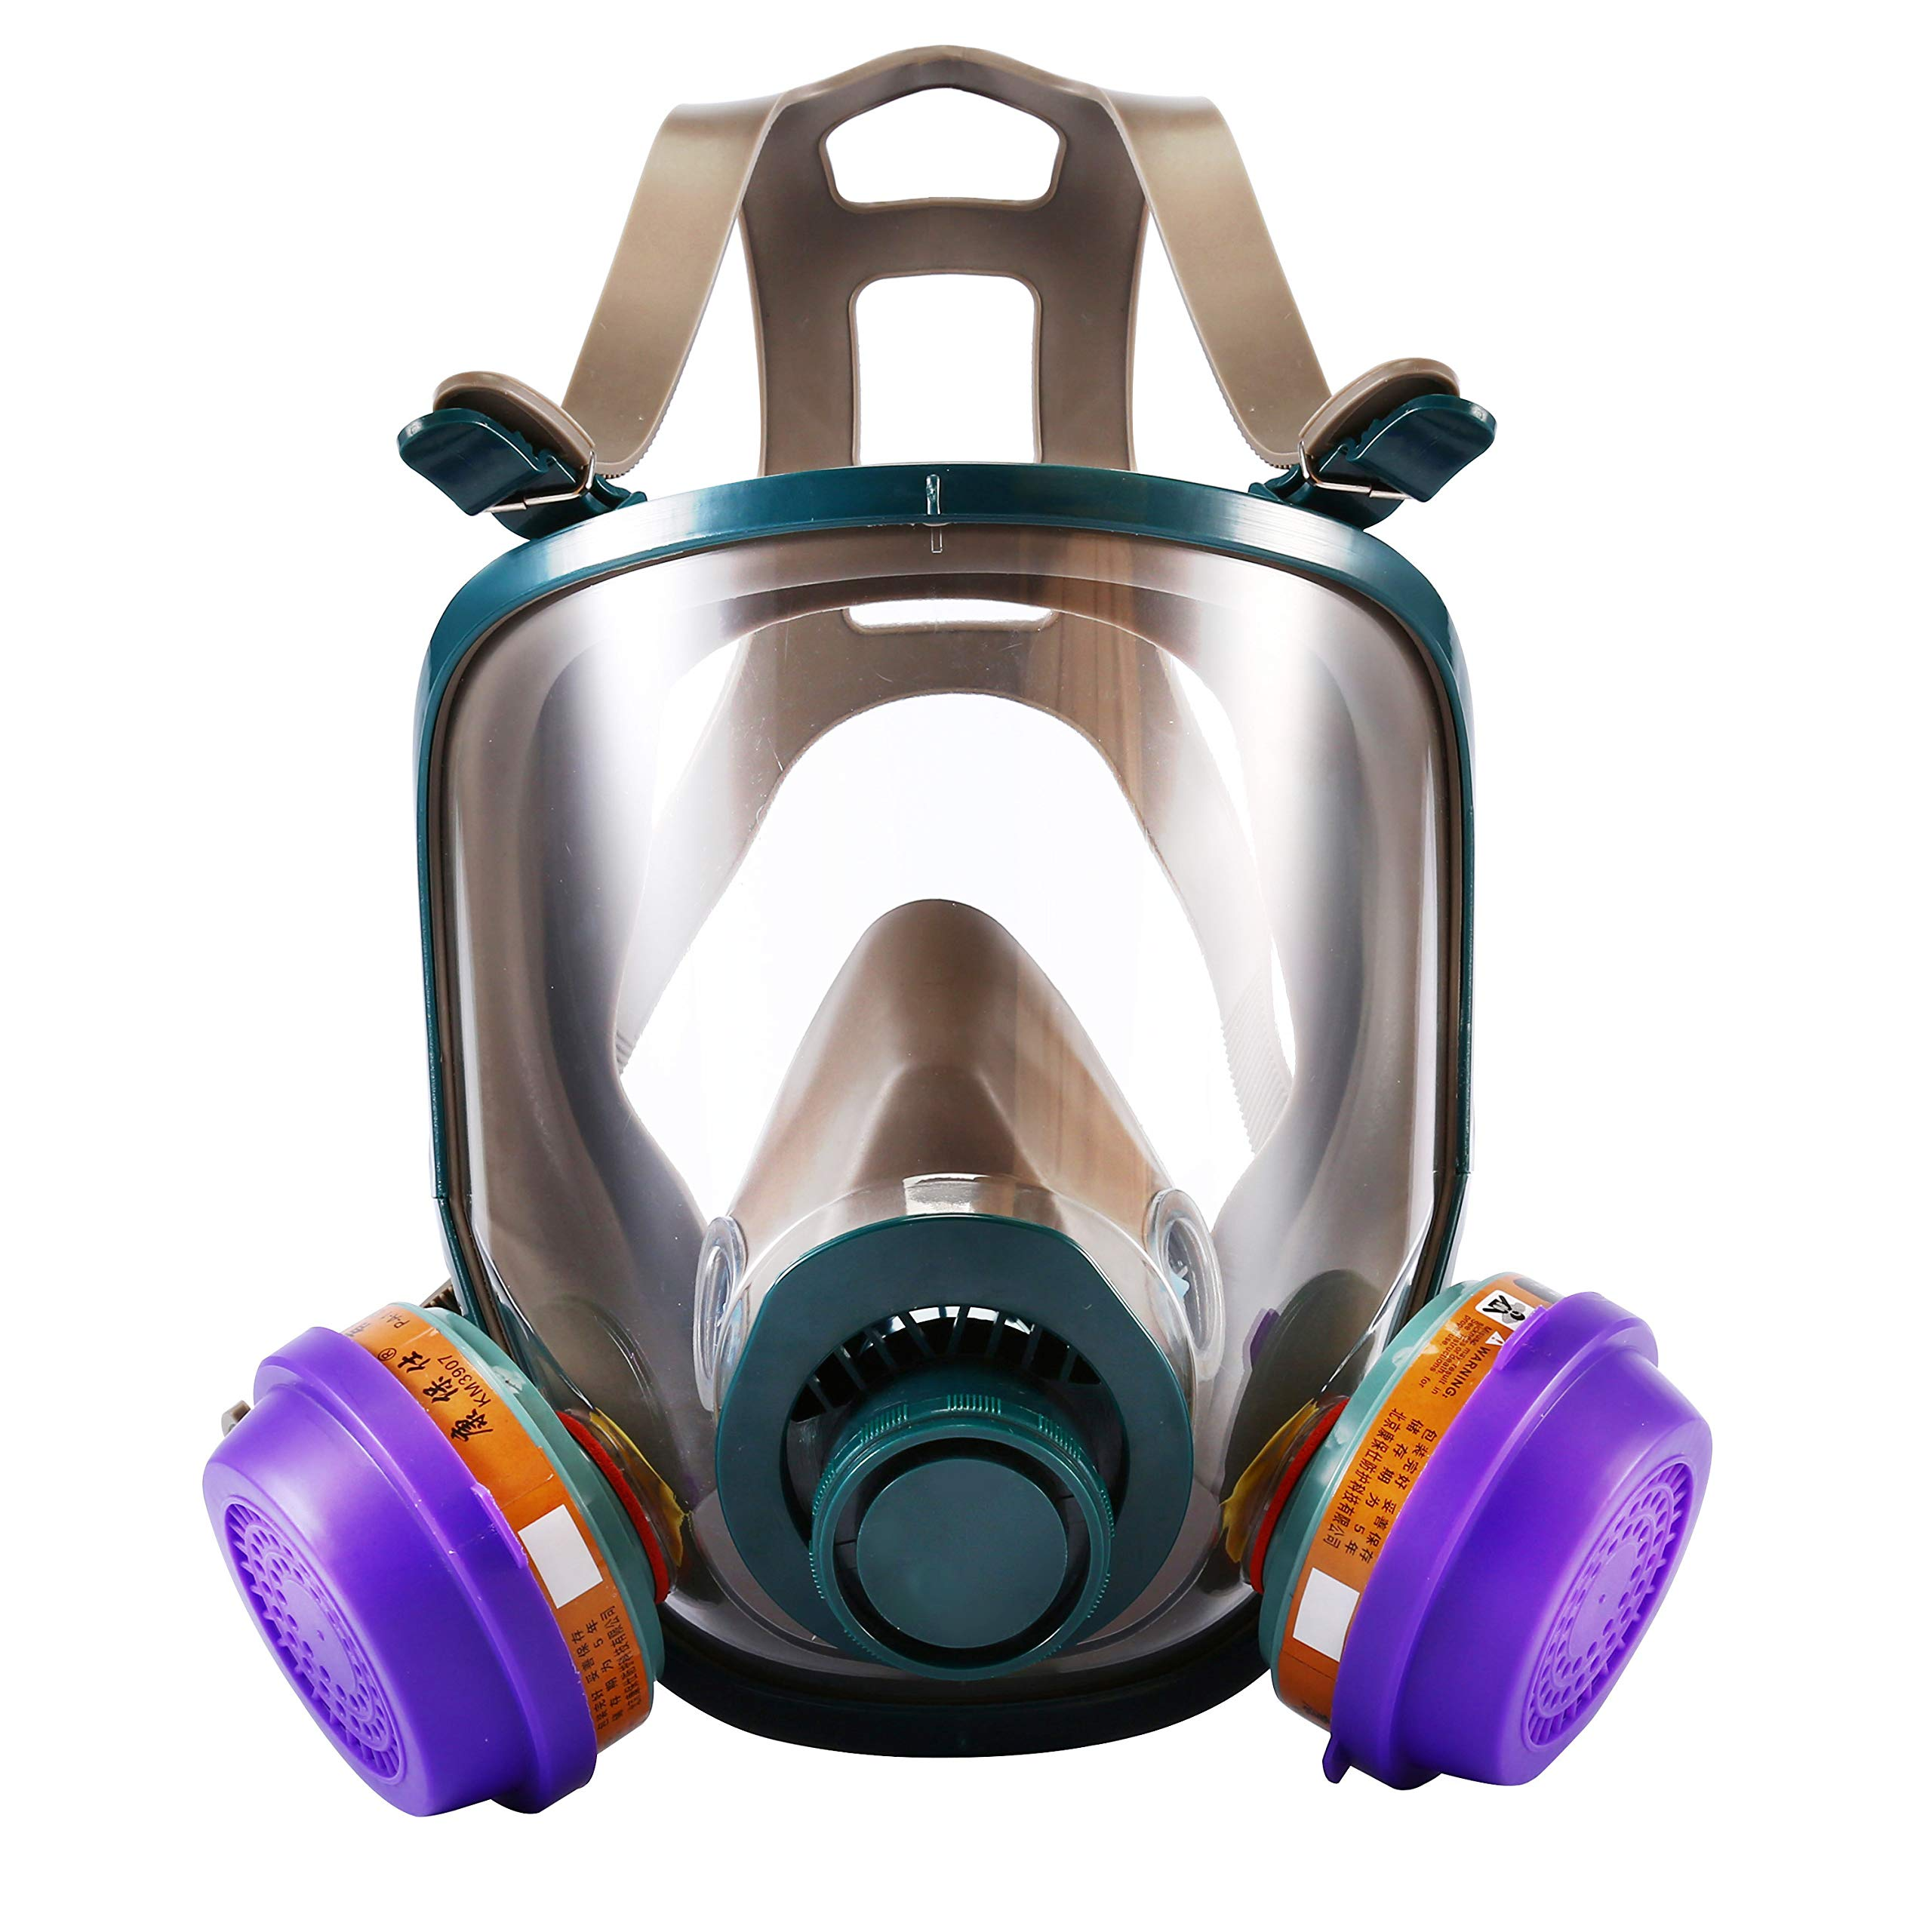 Holulo Full Face Respirator with Filter Cartridge Protection Industrial Grade Quality Organic Vapor Respiratory Protection Safety Mask(Honeycomb filter Mask)